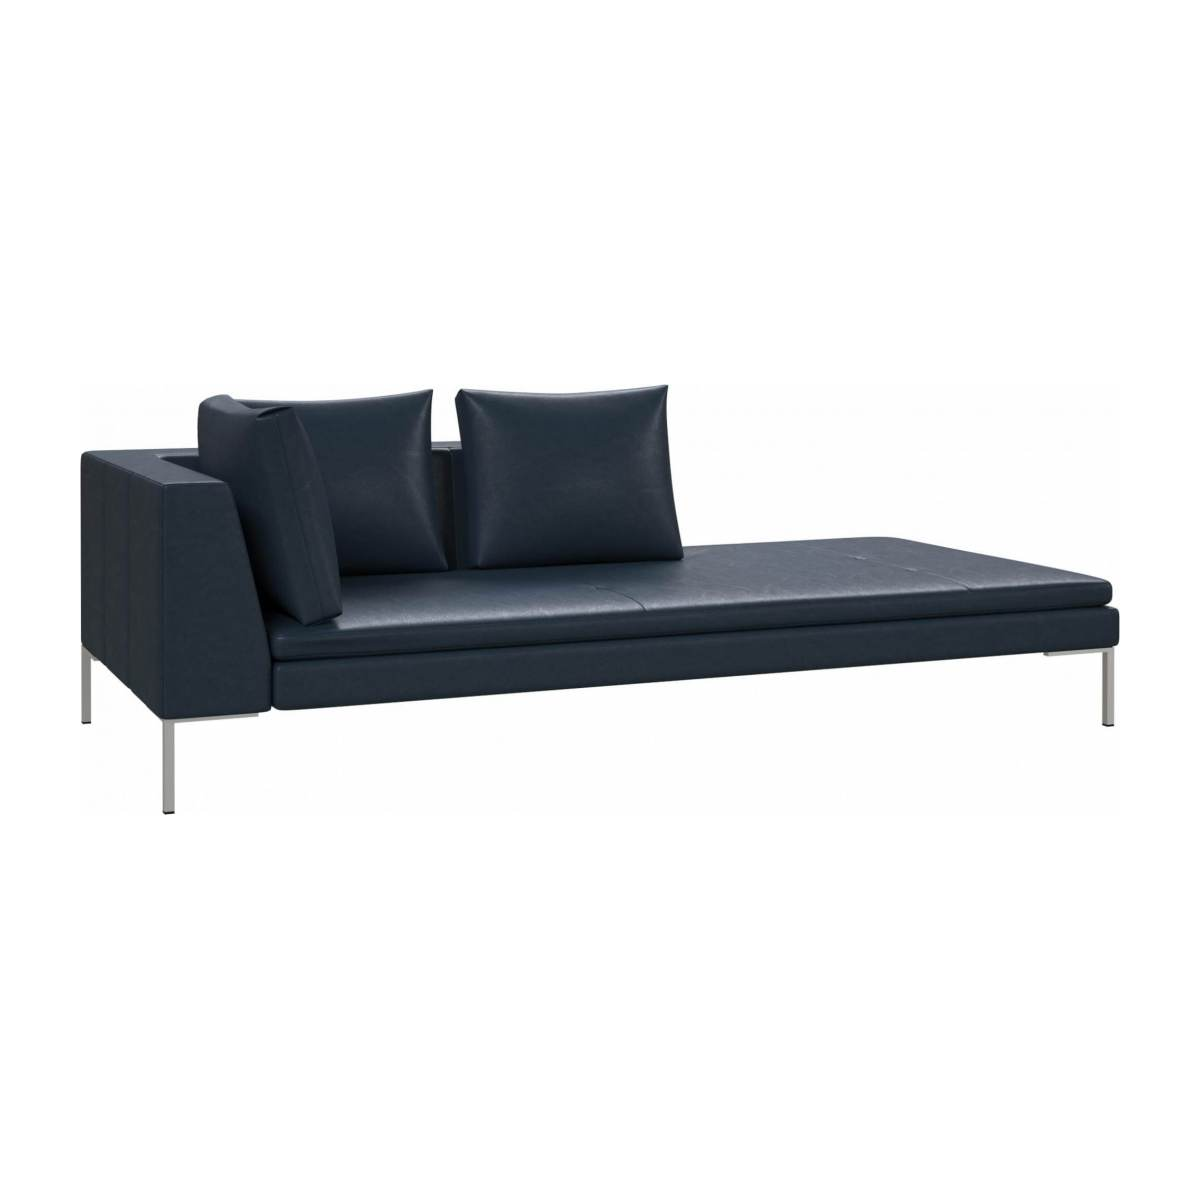 Right chaise longue in Vintage aniline leather, denim blue n°2